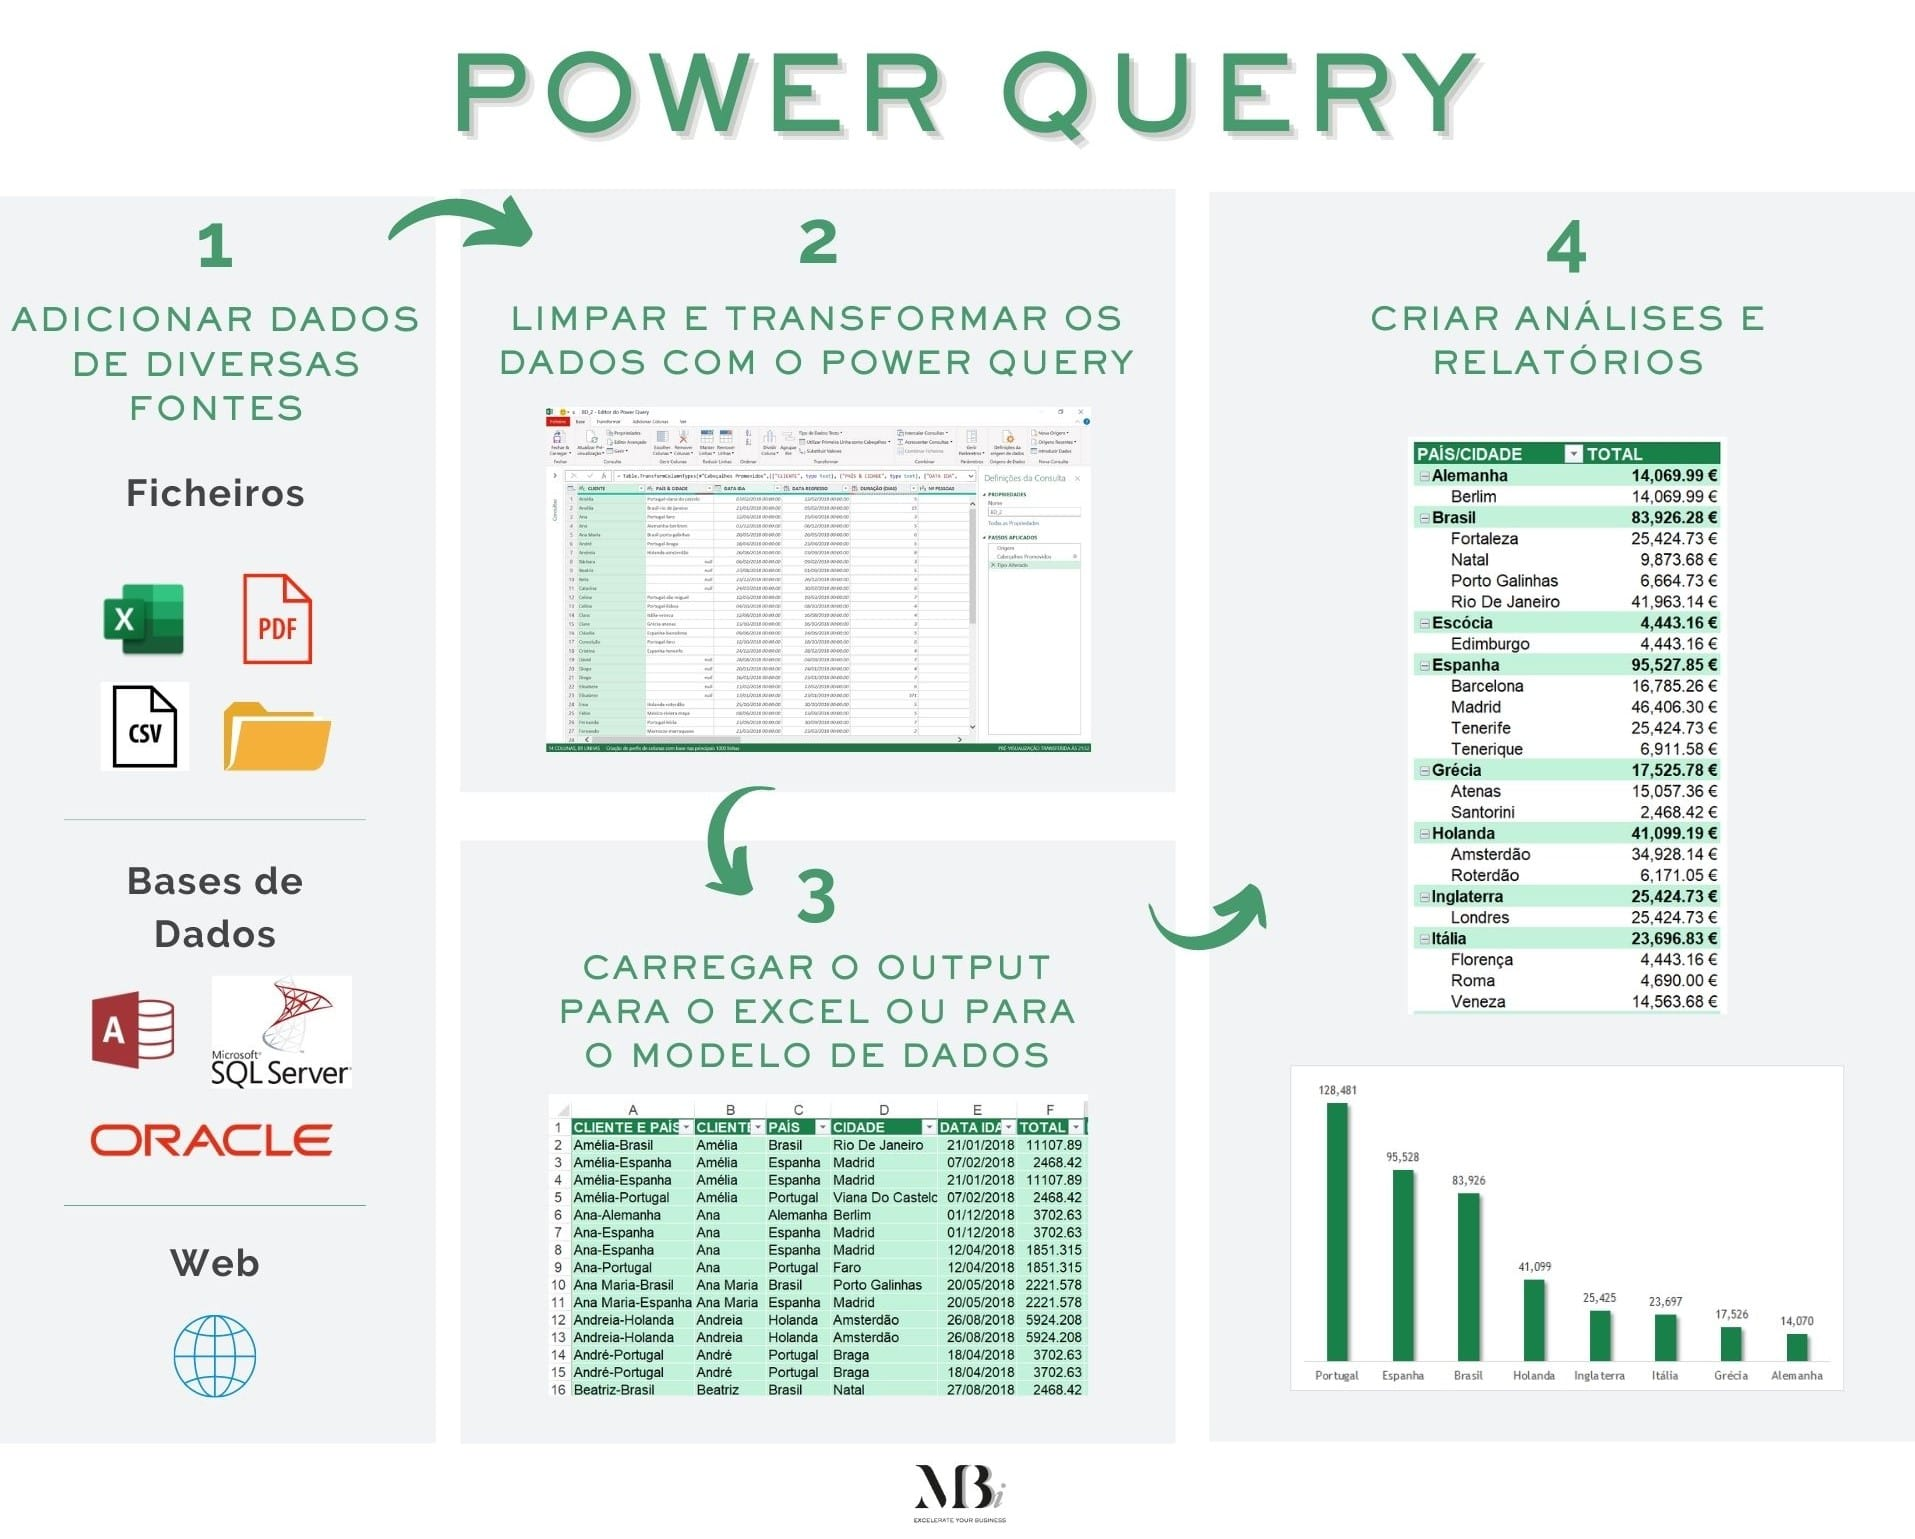 Resumo do funcionamento do Power Query